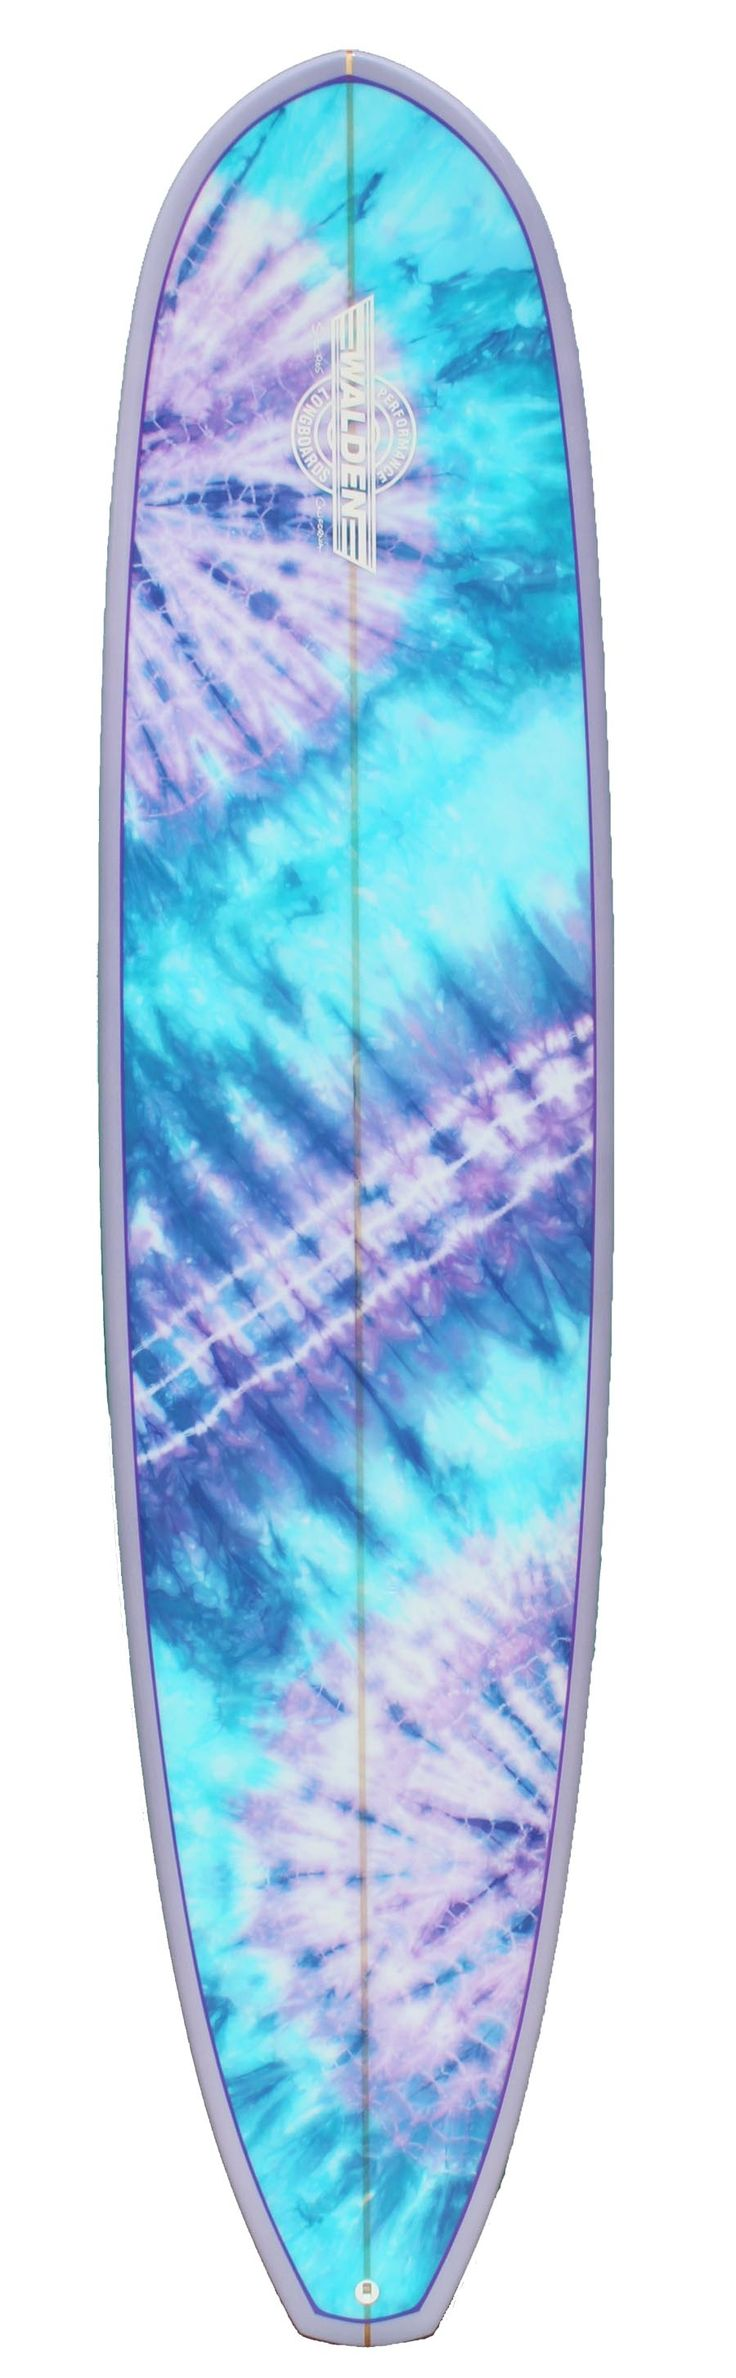 Pastel purple and blue tie dye surfboard